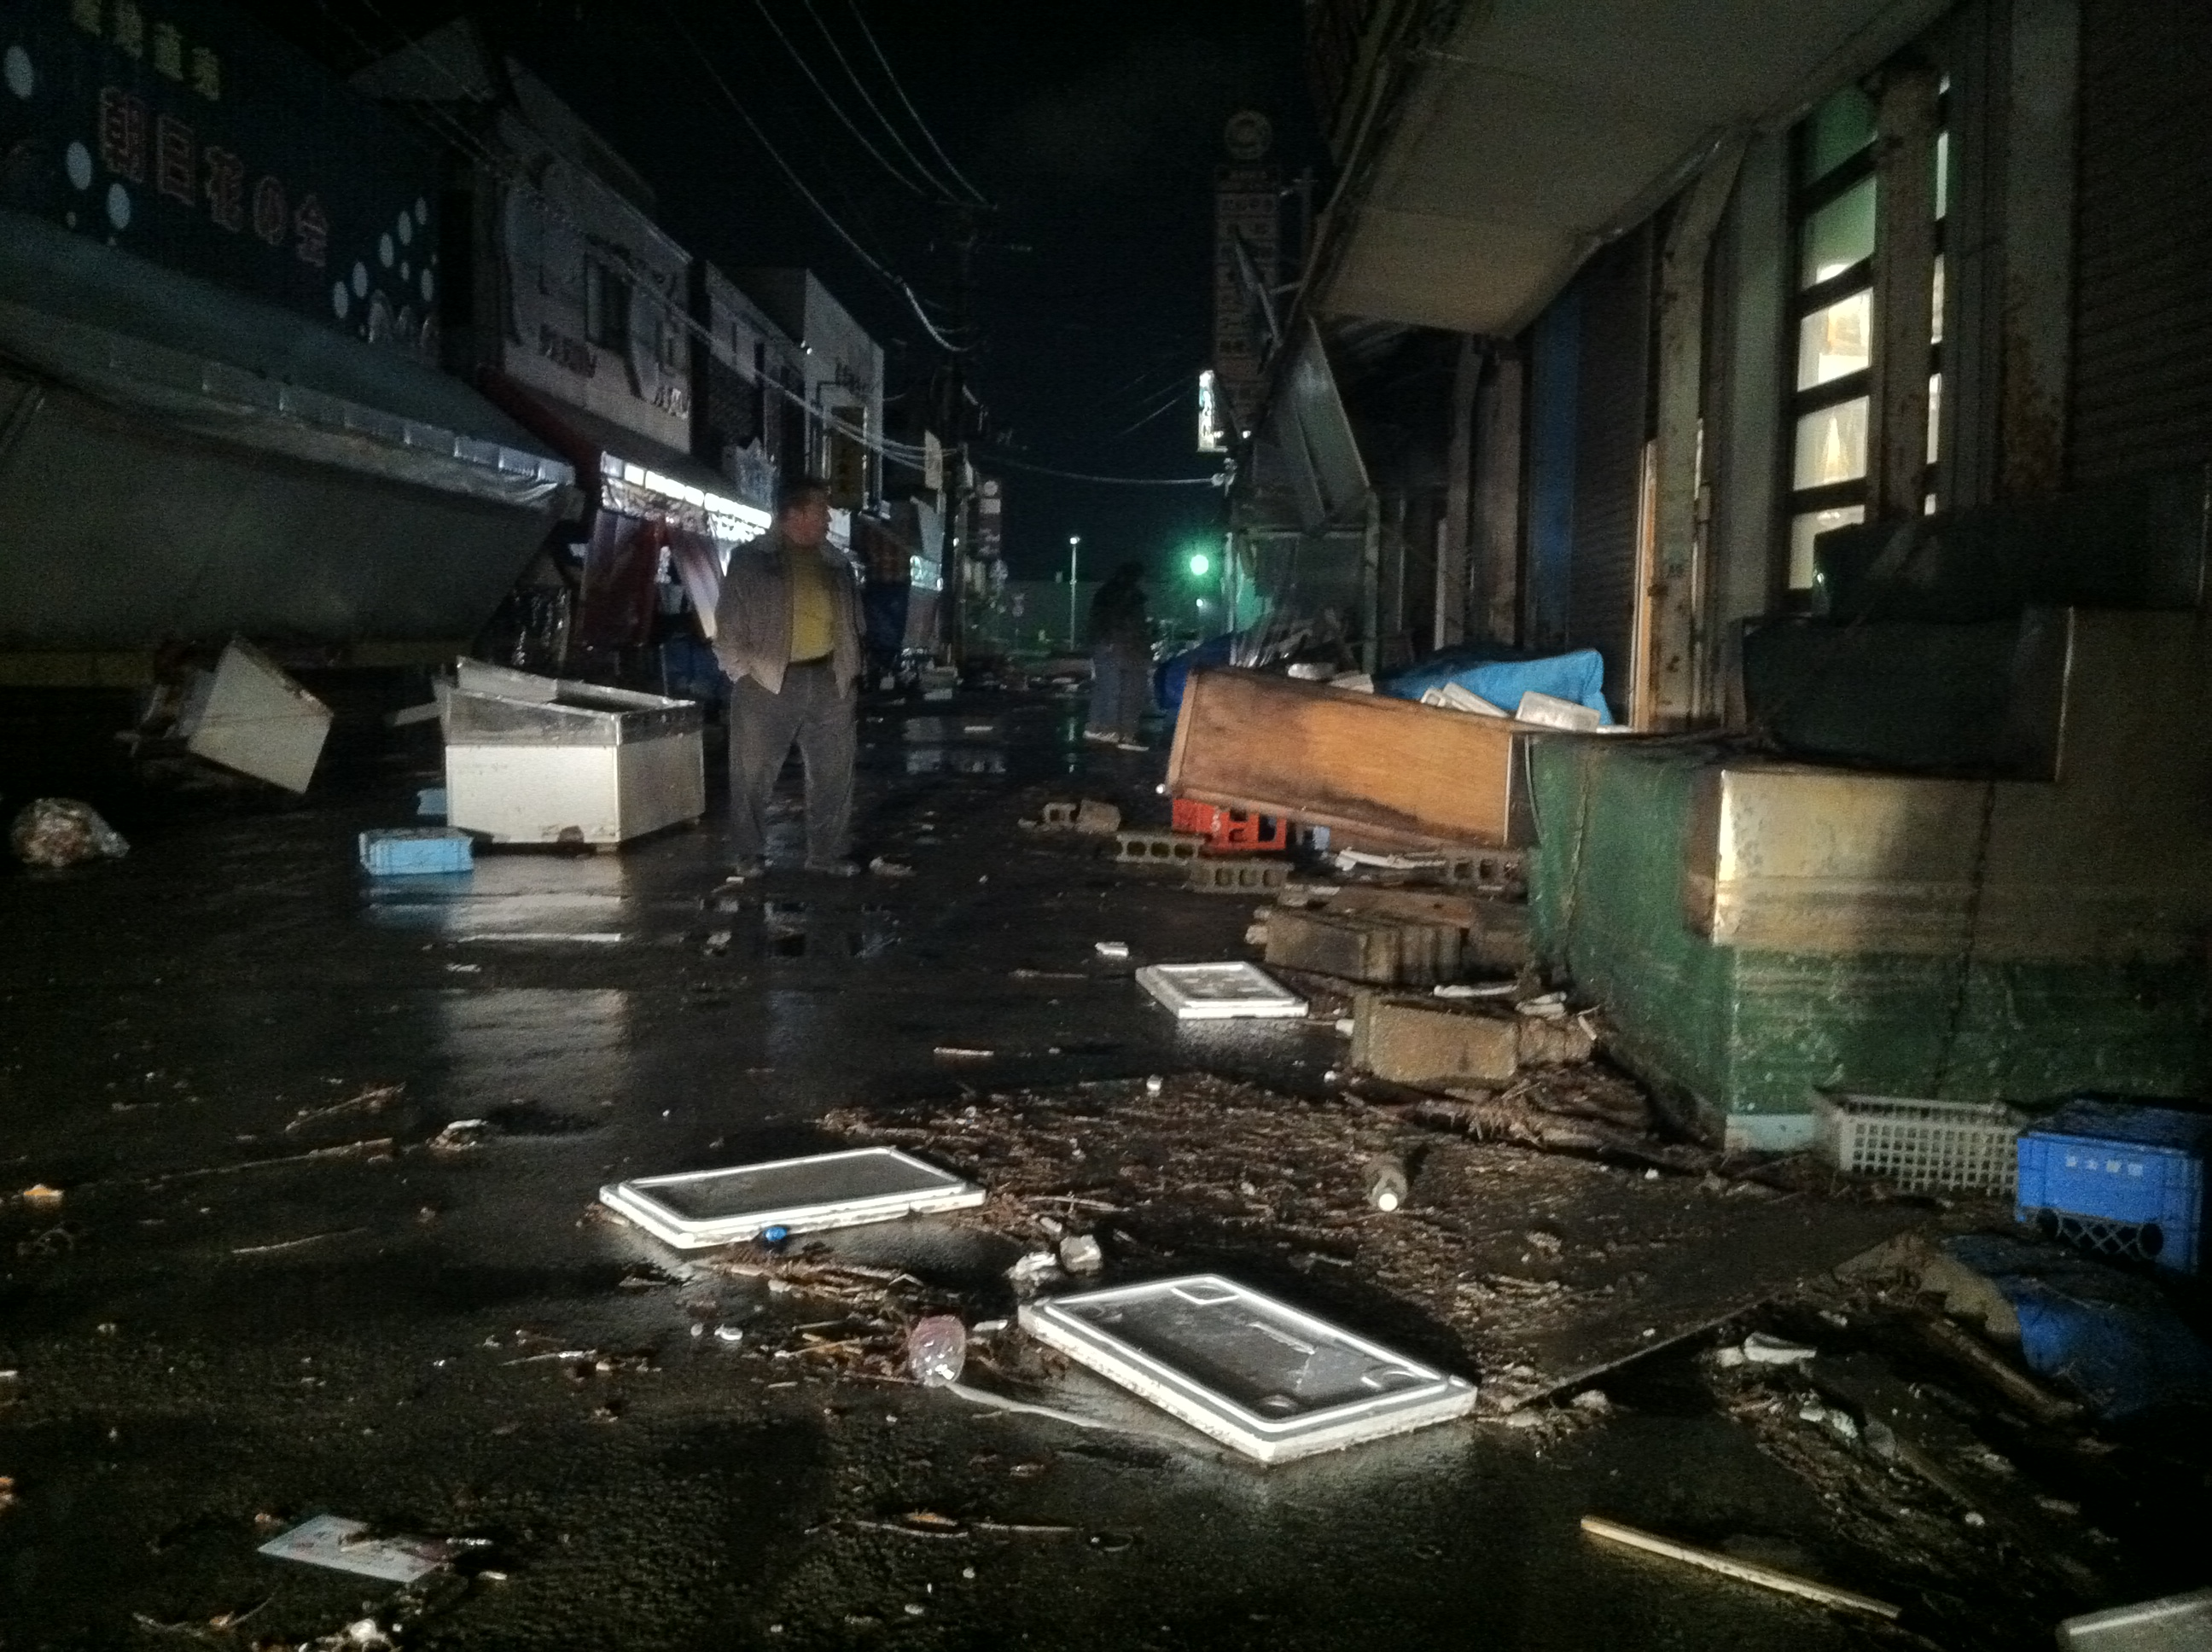 Pictures taken by Concord resident of aftermath in Japan